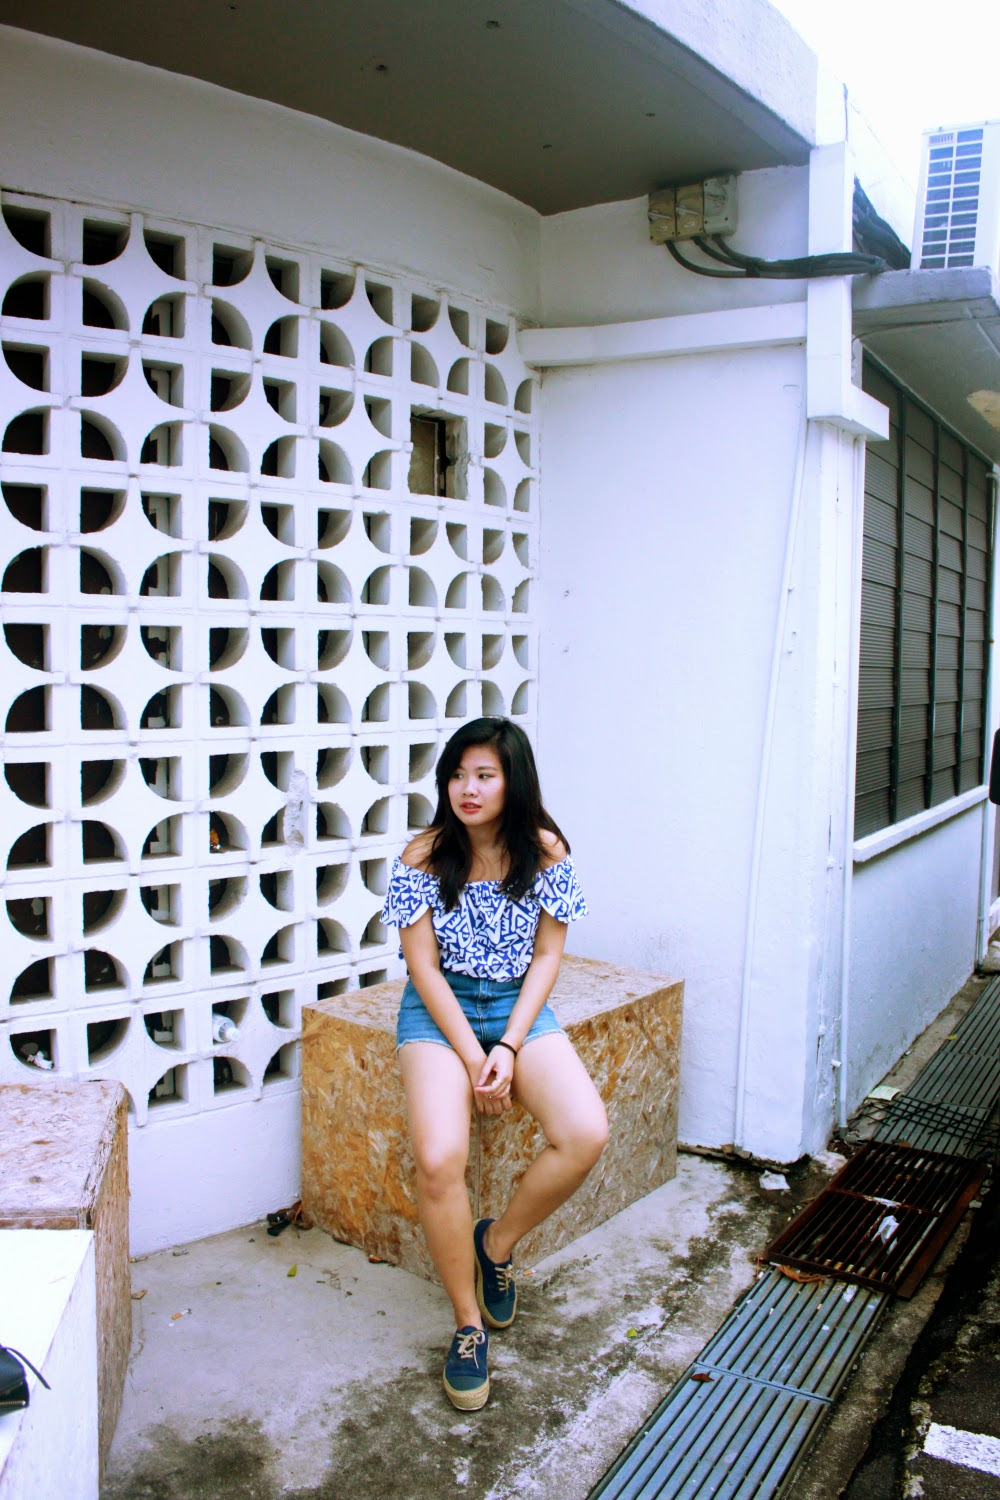 ootd, lookbook, tiong bahru, photography, singapore blogger